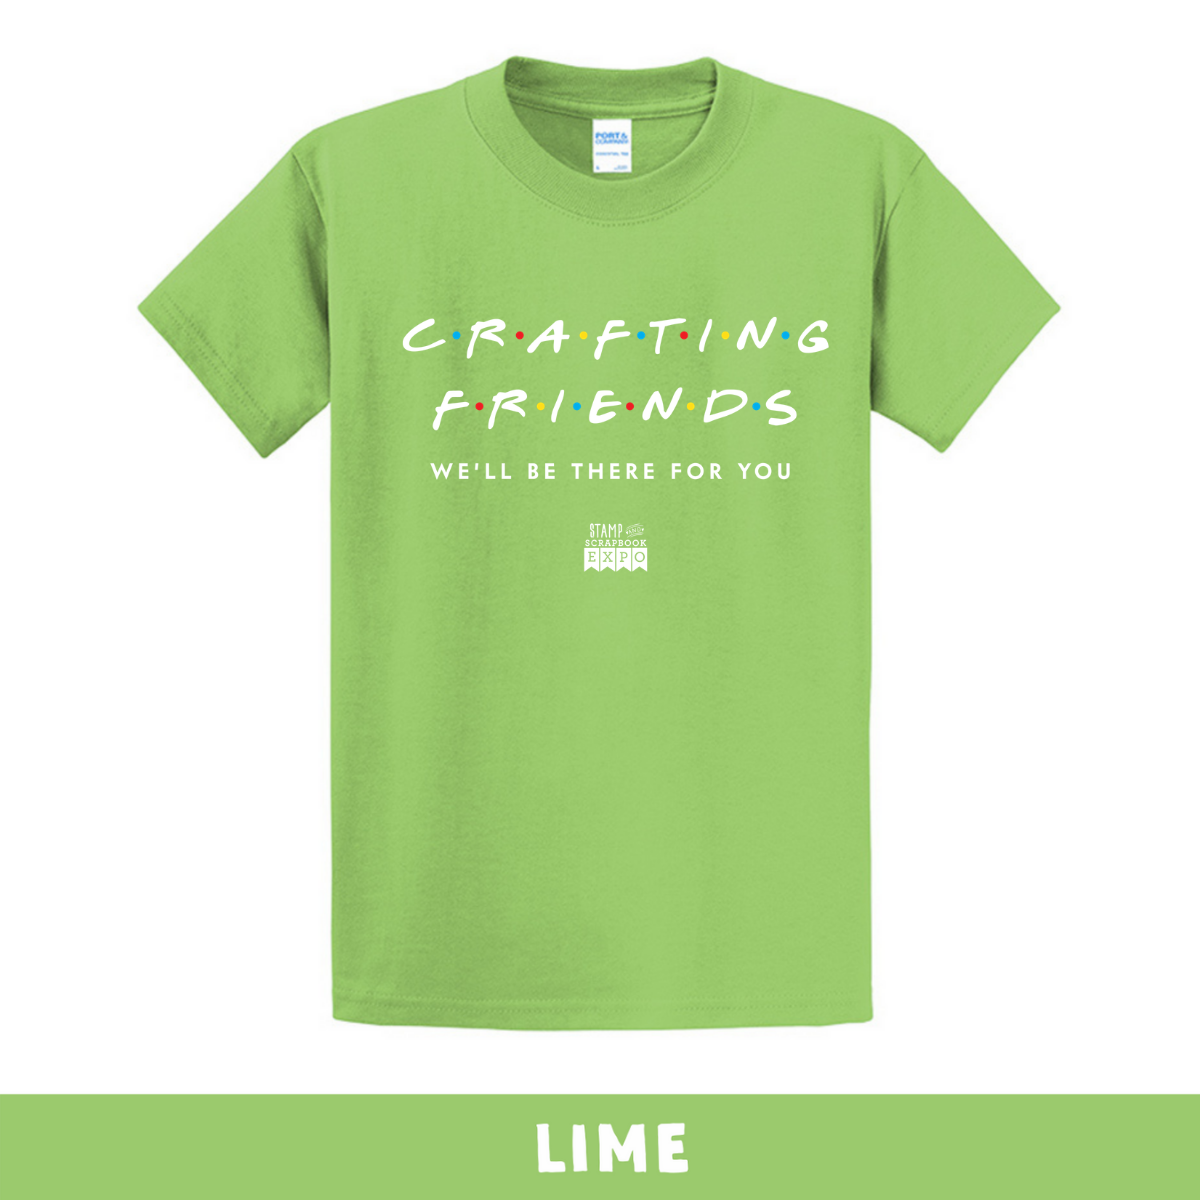 Lime - Crew Neck Unisex T-Shirt - Crafting Friends